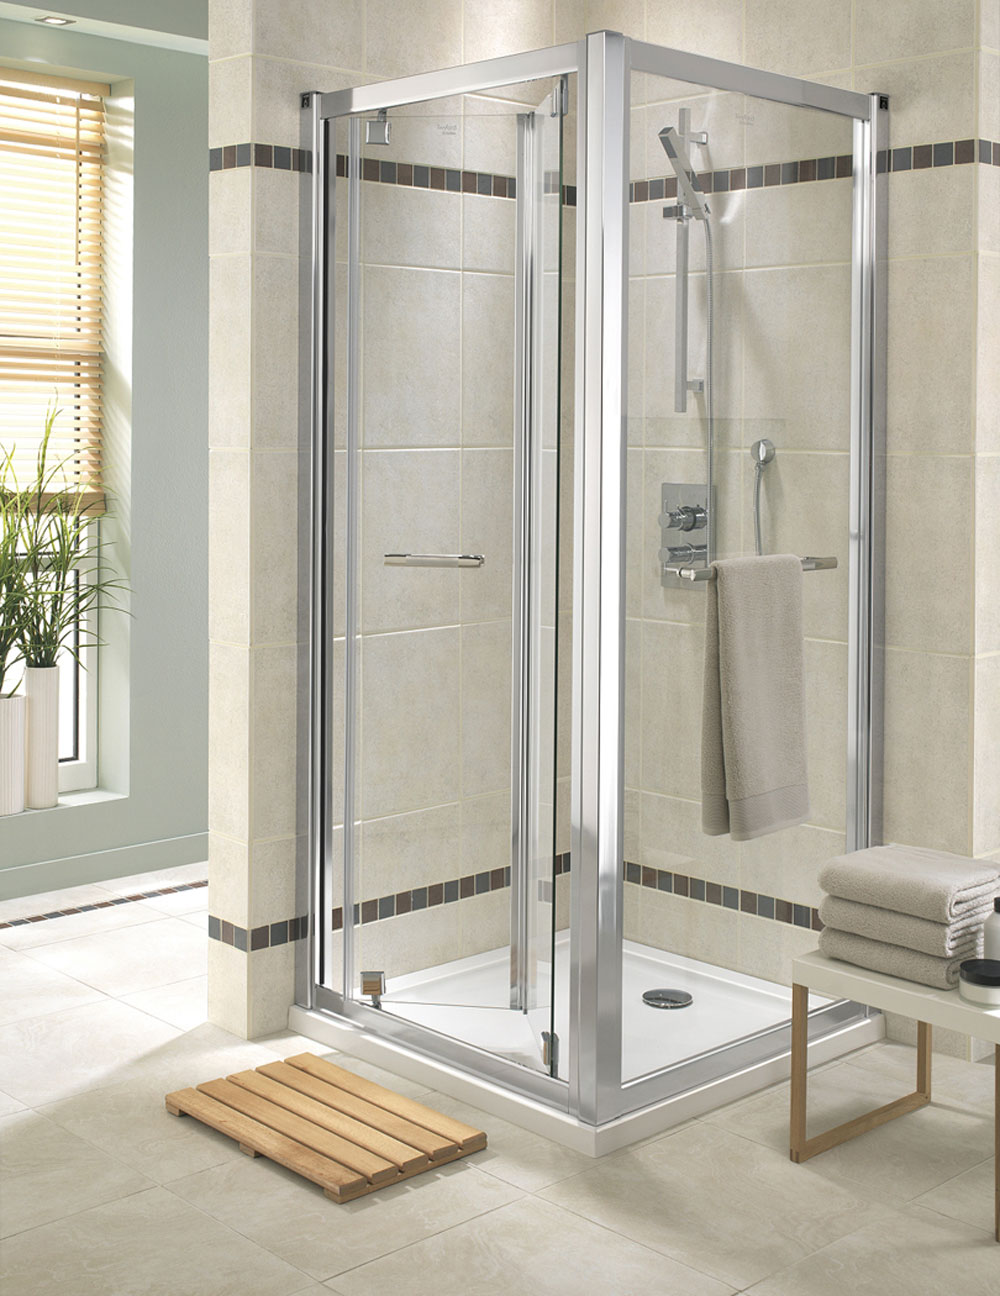 : frameless glass shower door hinge adjustment featured top glass shower doors frameless bathroom decorating ideas on a budget